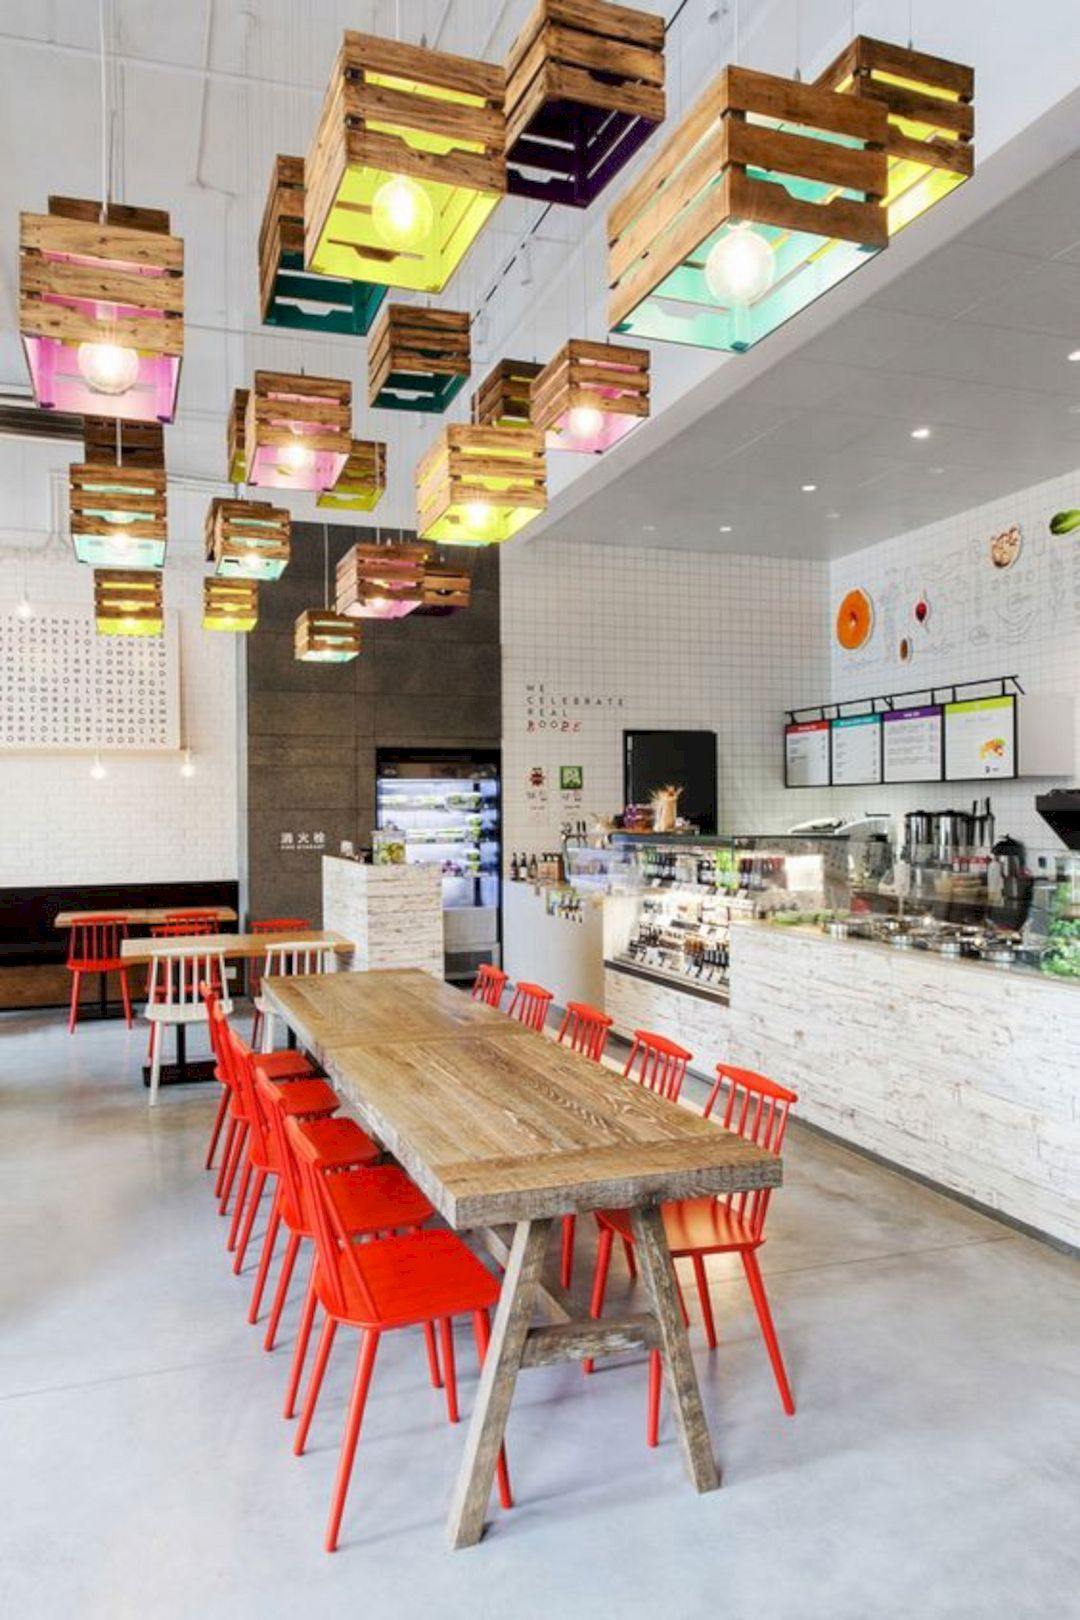 15 Great Interior Design Ideas For Small Restaurant 14 Cafe